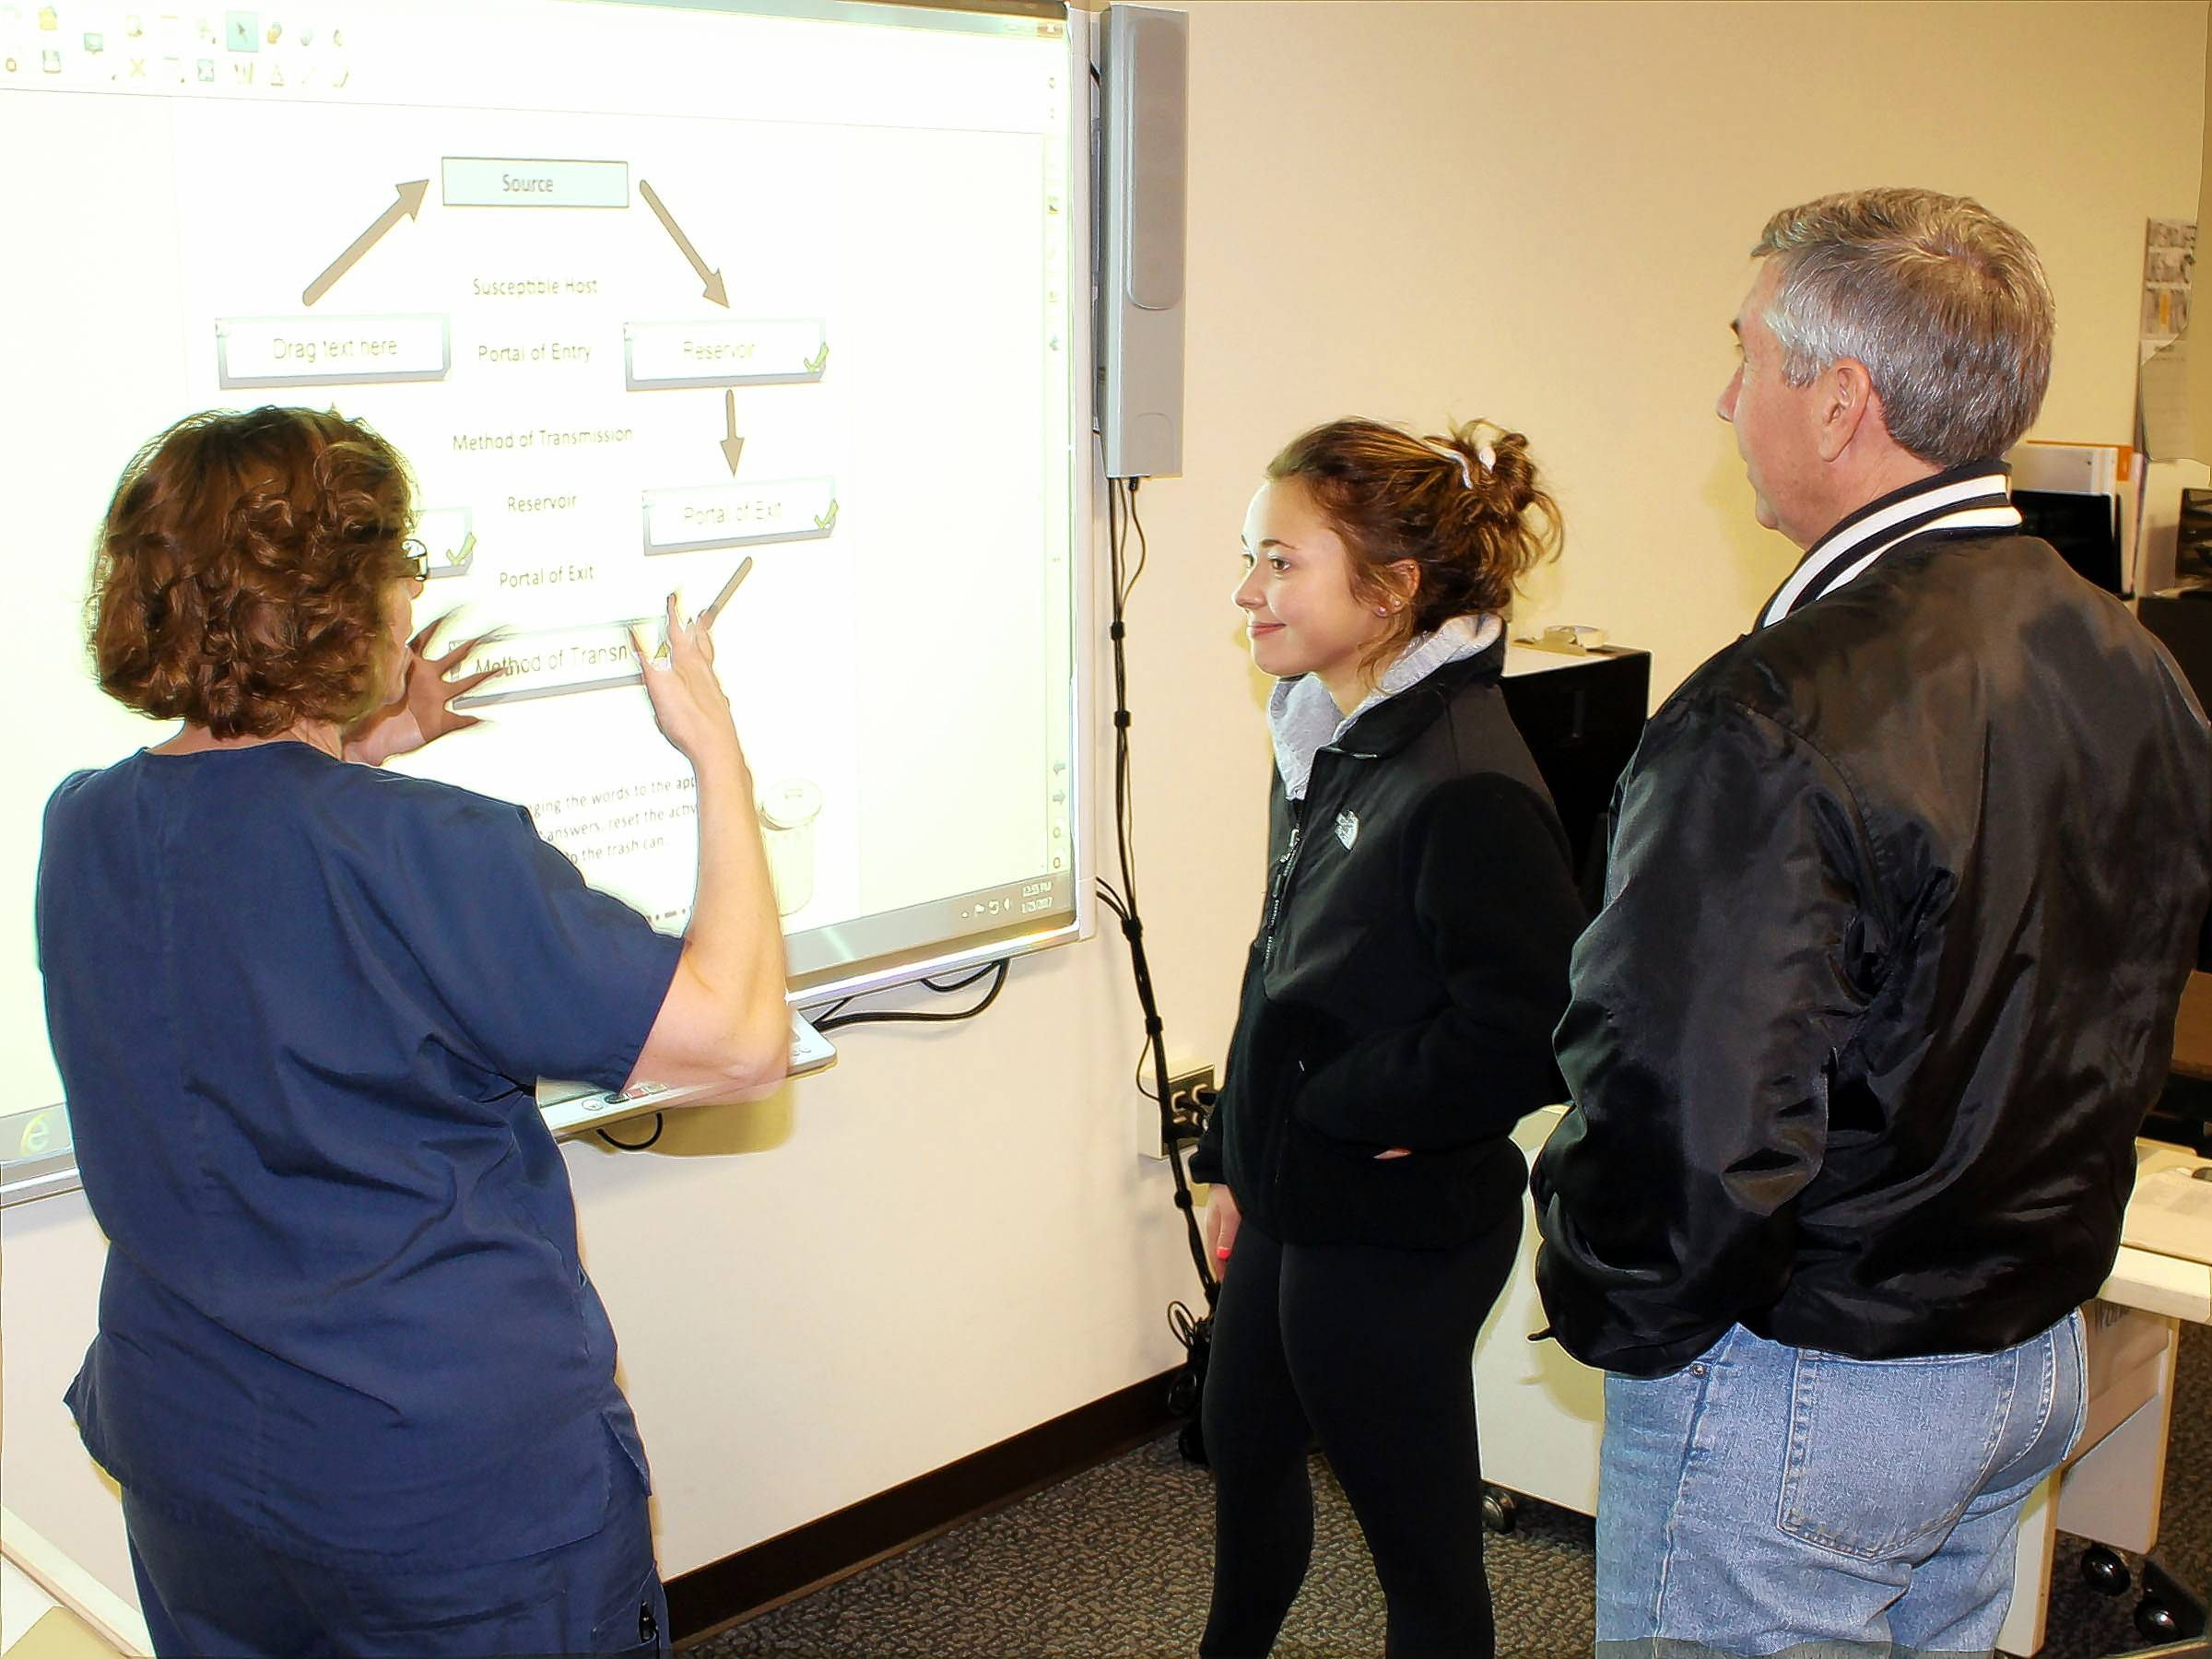 During a recent visit to Technology Center of DuPage by alumnus Skip Perillo, right, and his daughter Jennifer, center, instructor Marie Kmiec demonstrated the use of interactive SMART Board technology in the Healthcare Foundations program. A Lake Park High School student, Jennifer plans to enroll in the elective program her senior year.